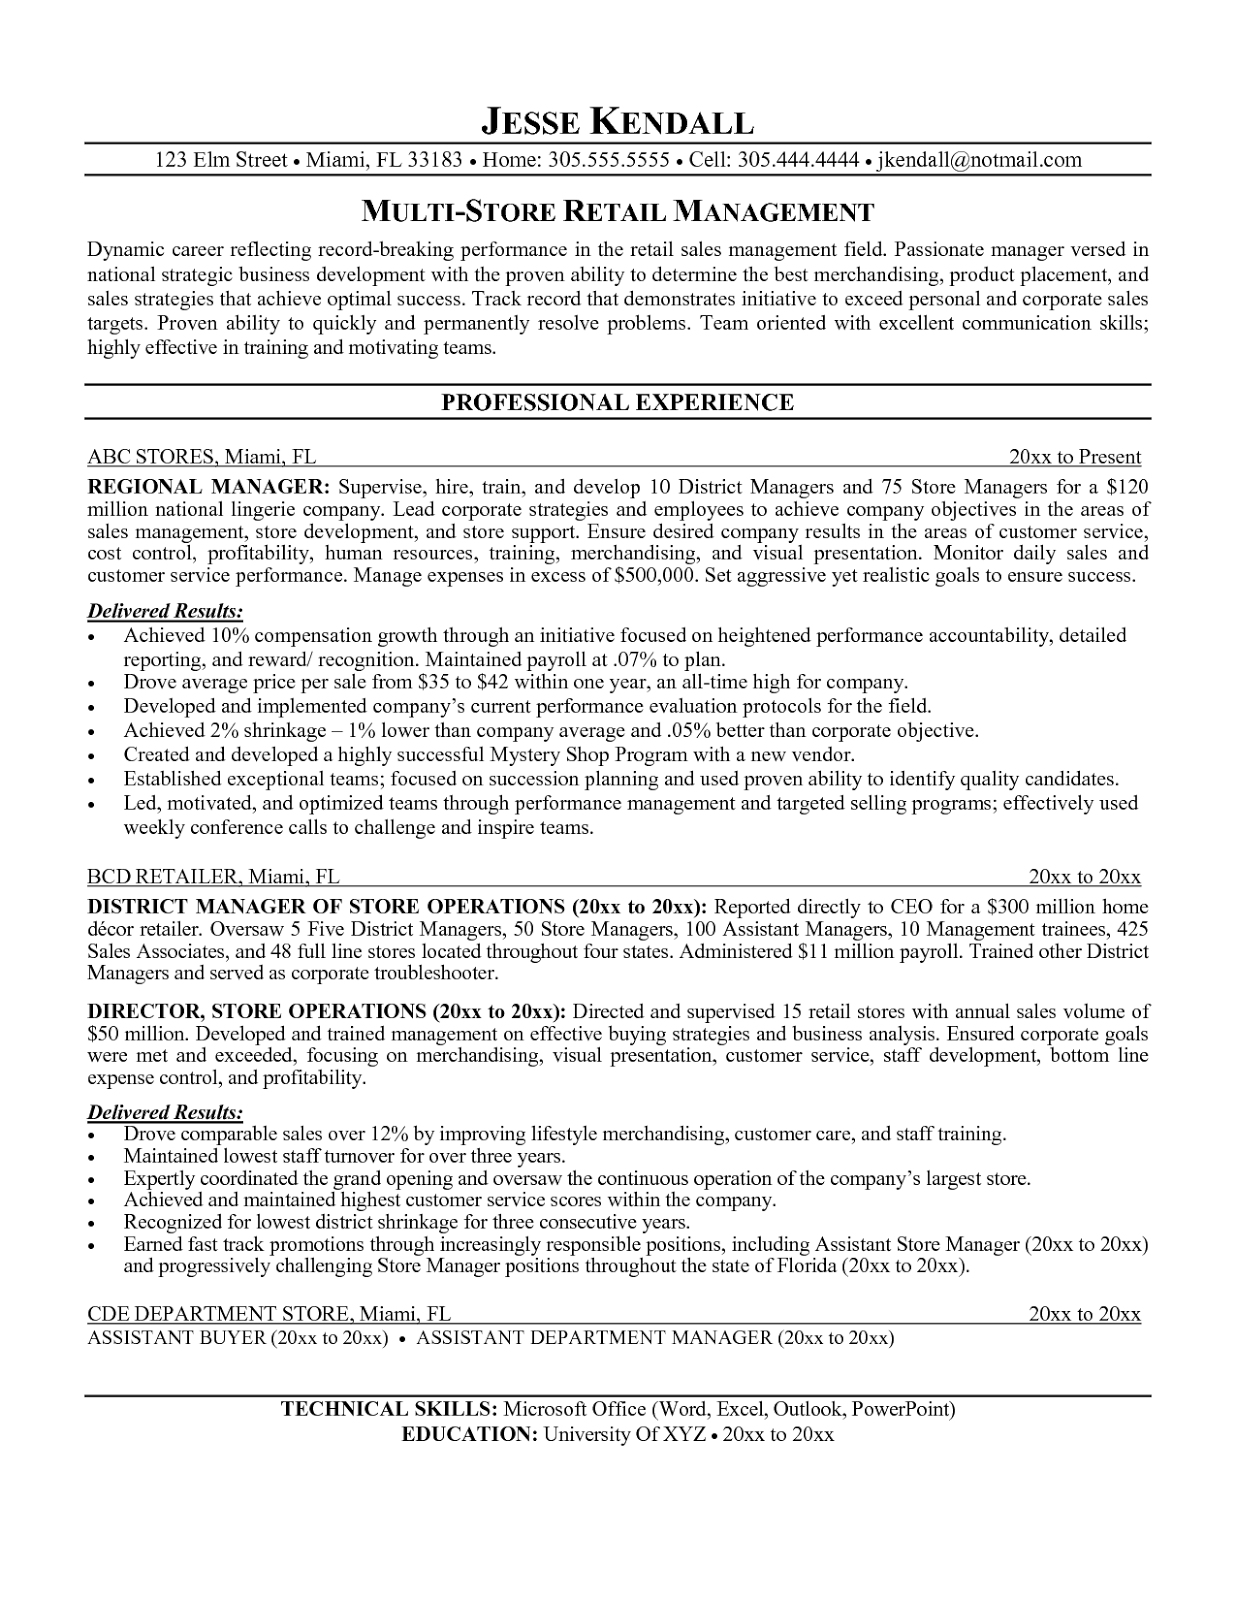 resume template retail resume example for retail choose best retail manager resume example recentresumescom retail sales - Resume Samples For Retail